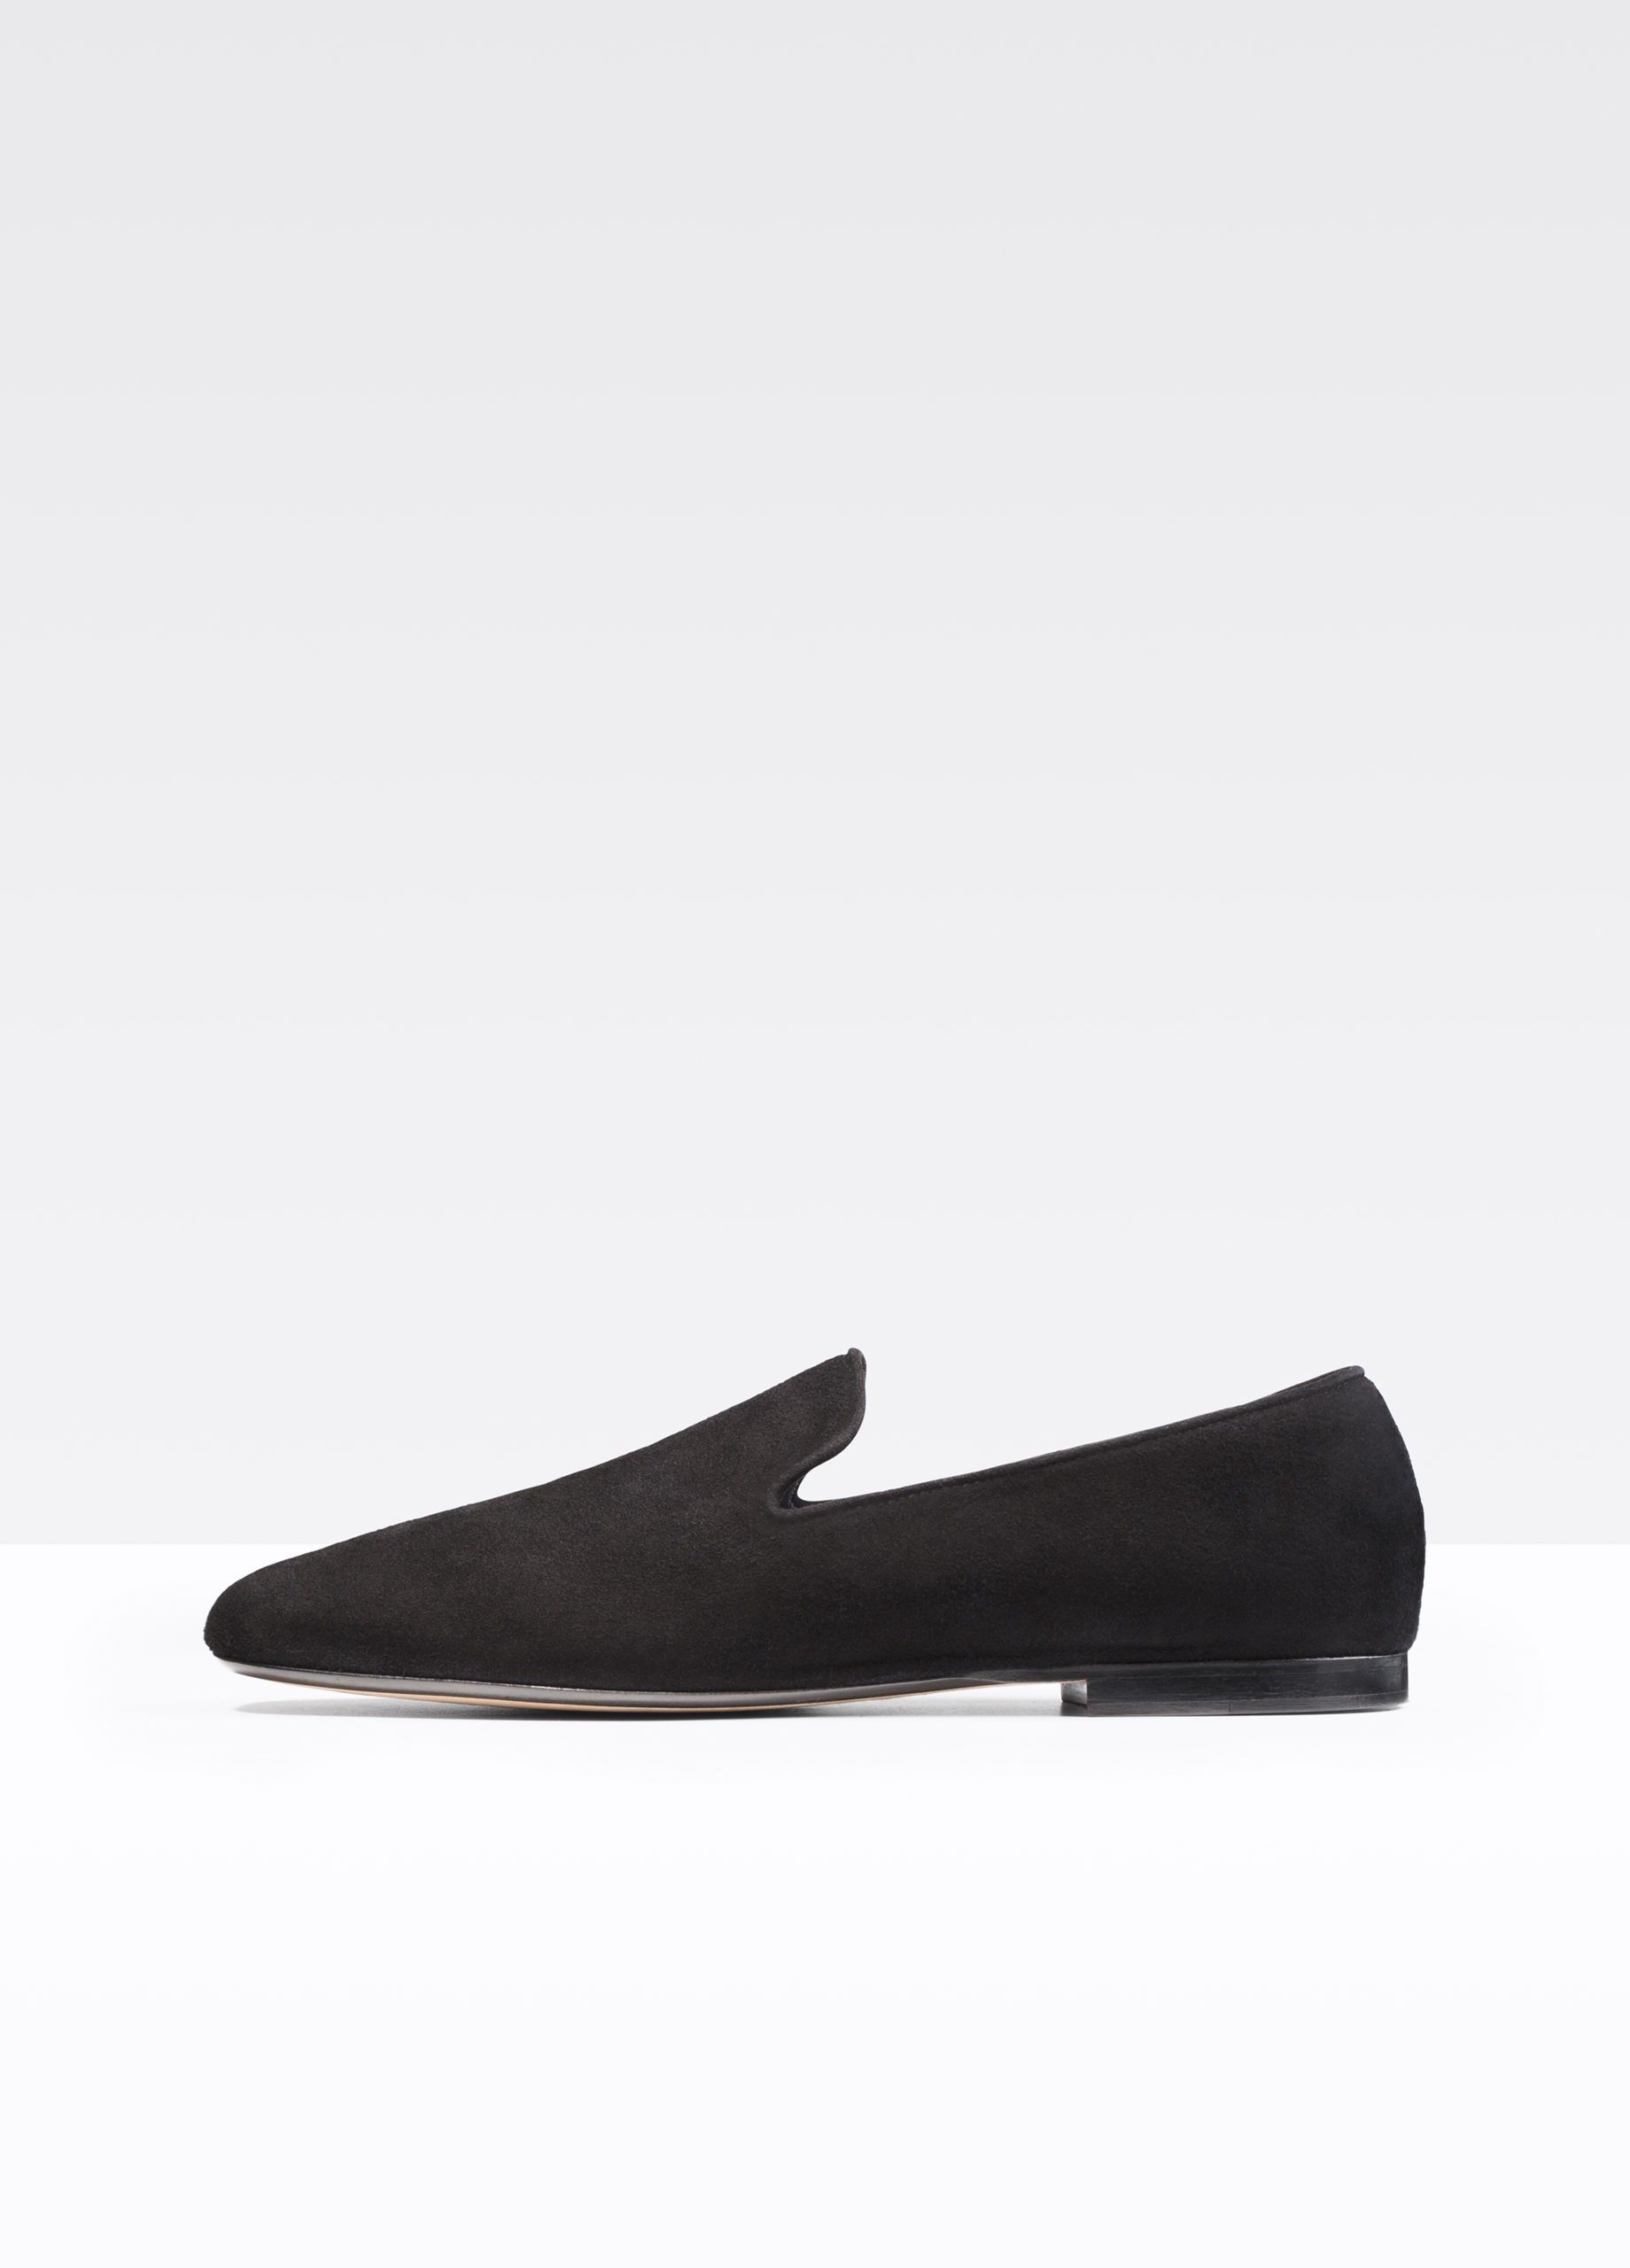 af41e40f959 VINCE Bray Suede Flat - Black.  vince  shoes  all